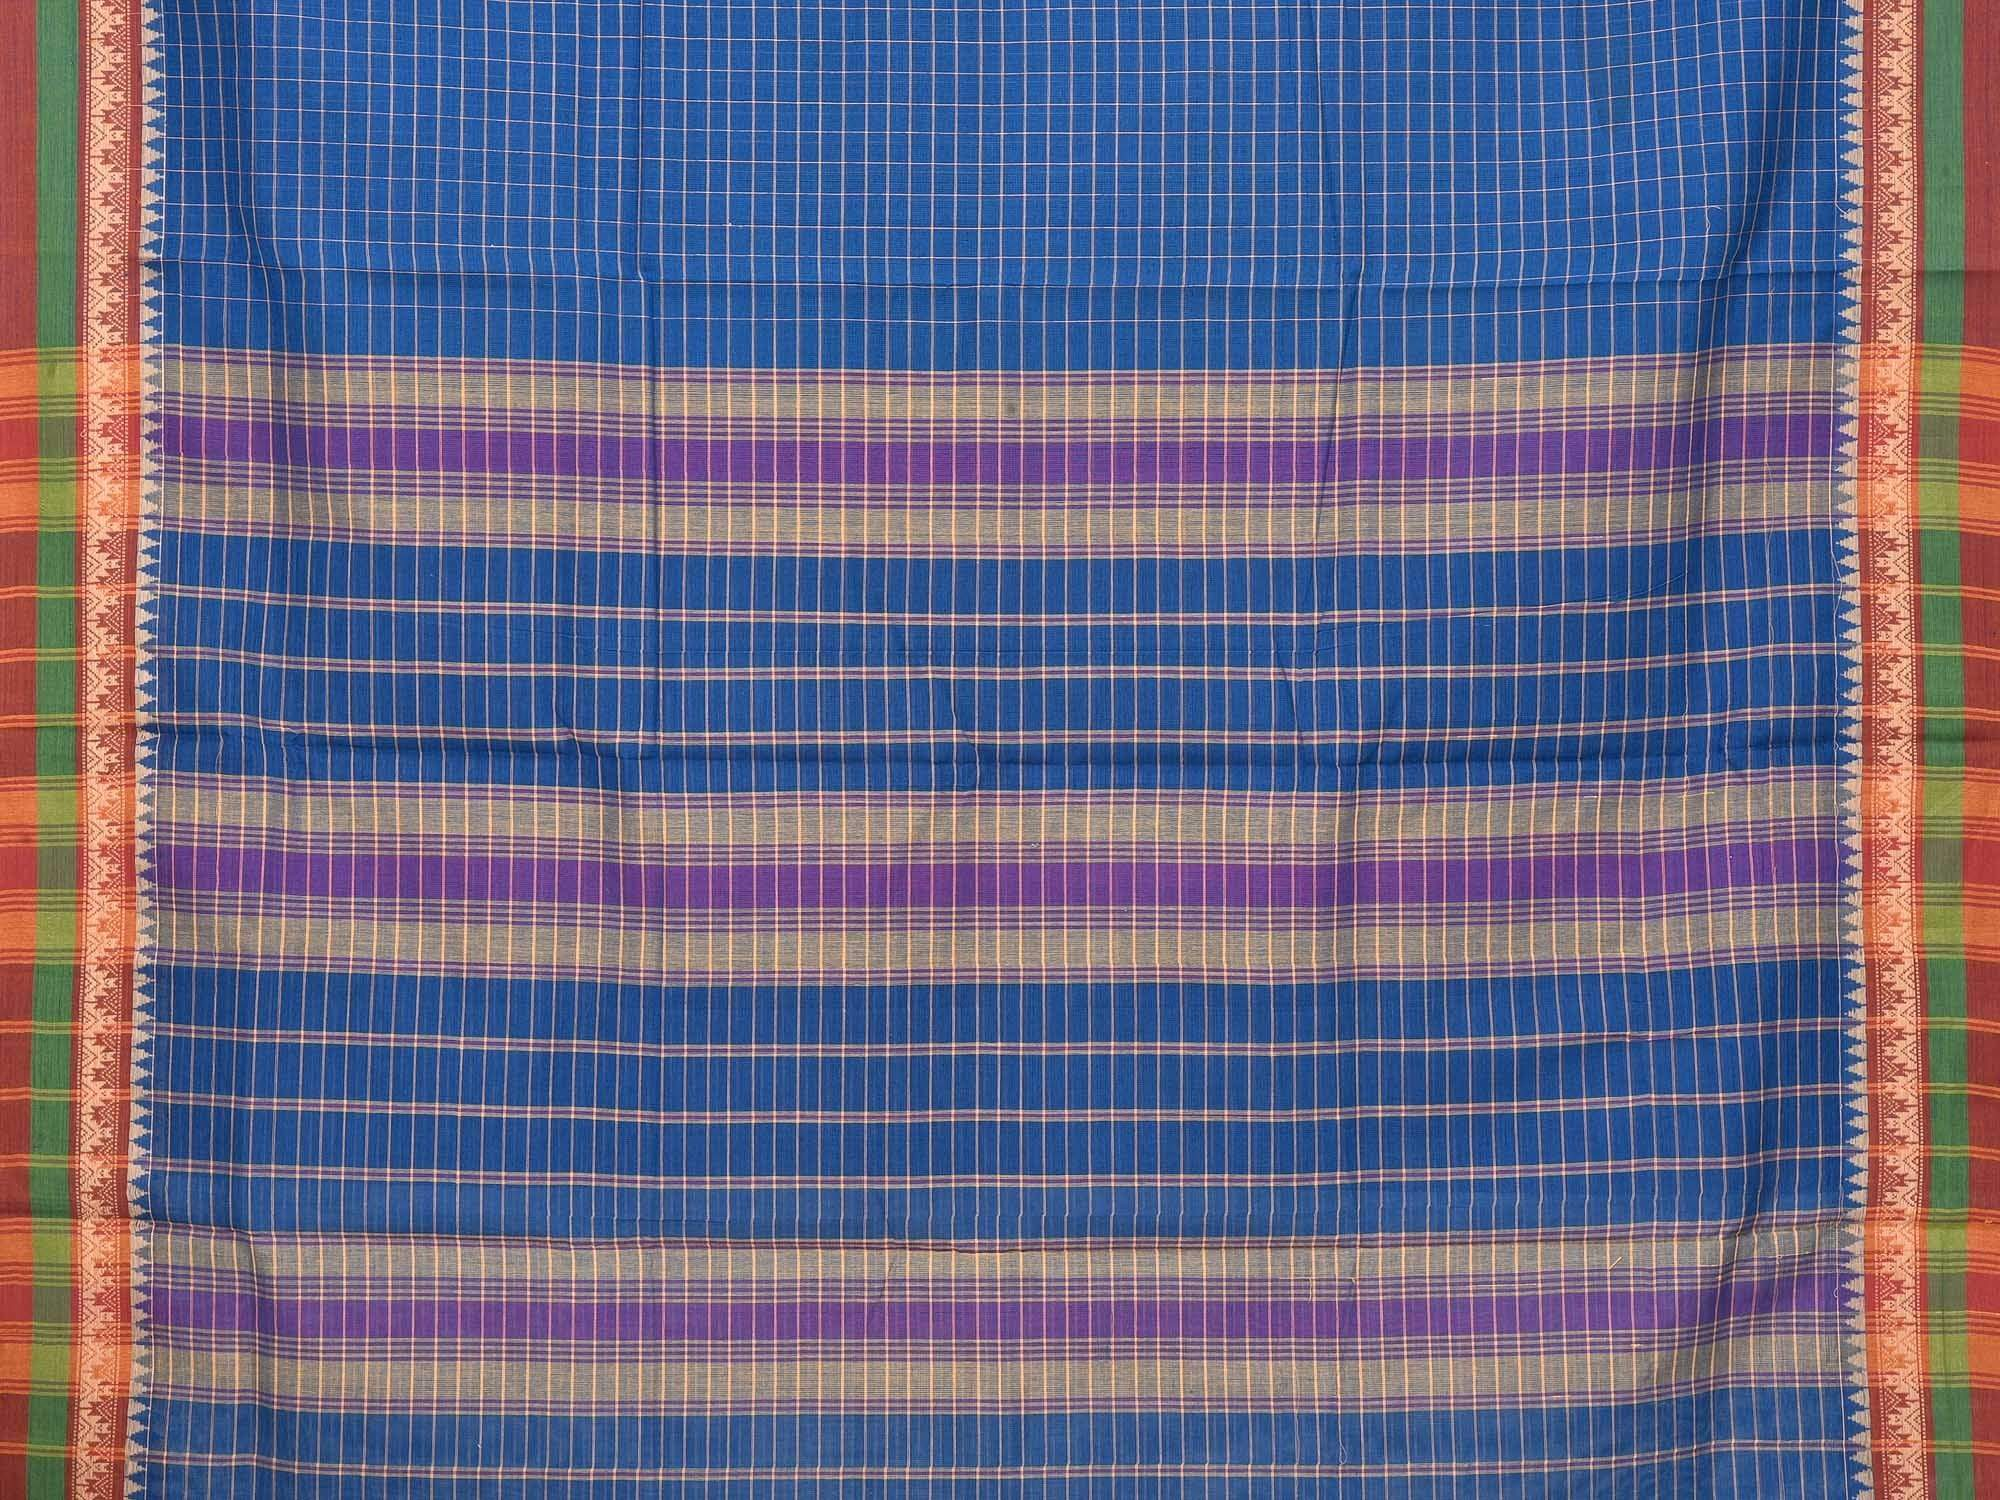 Blue Narayanpet Cotton Handloom Saree with Checks Design No Blouse np0222